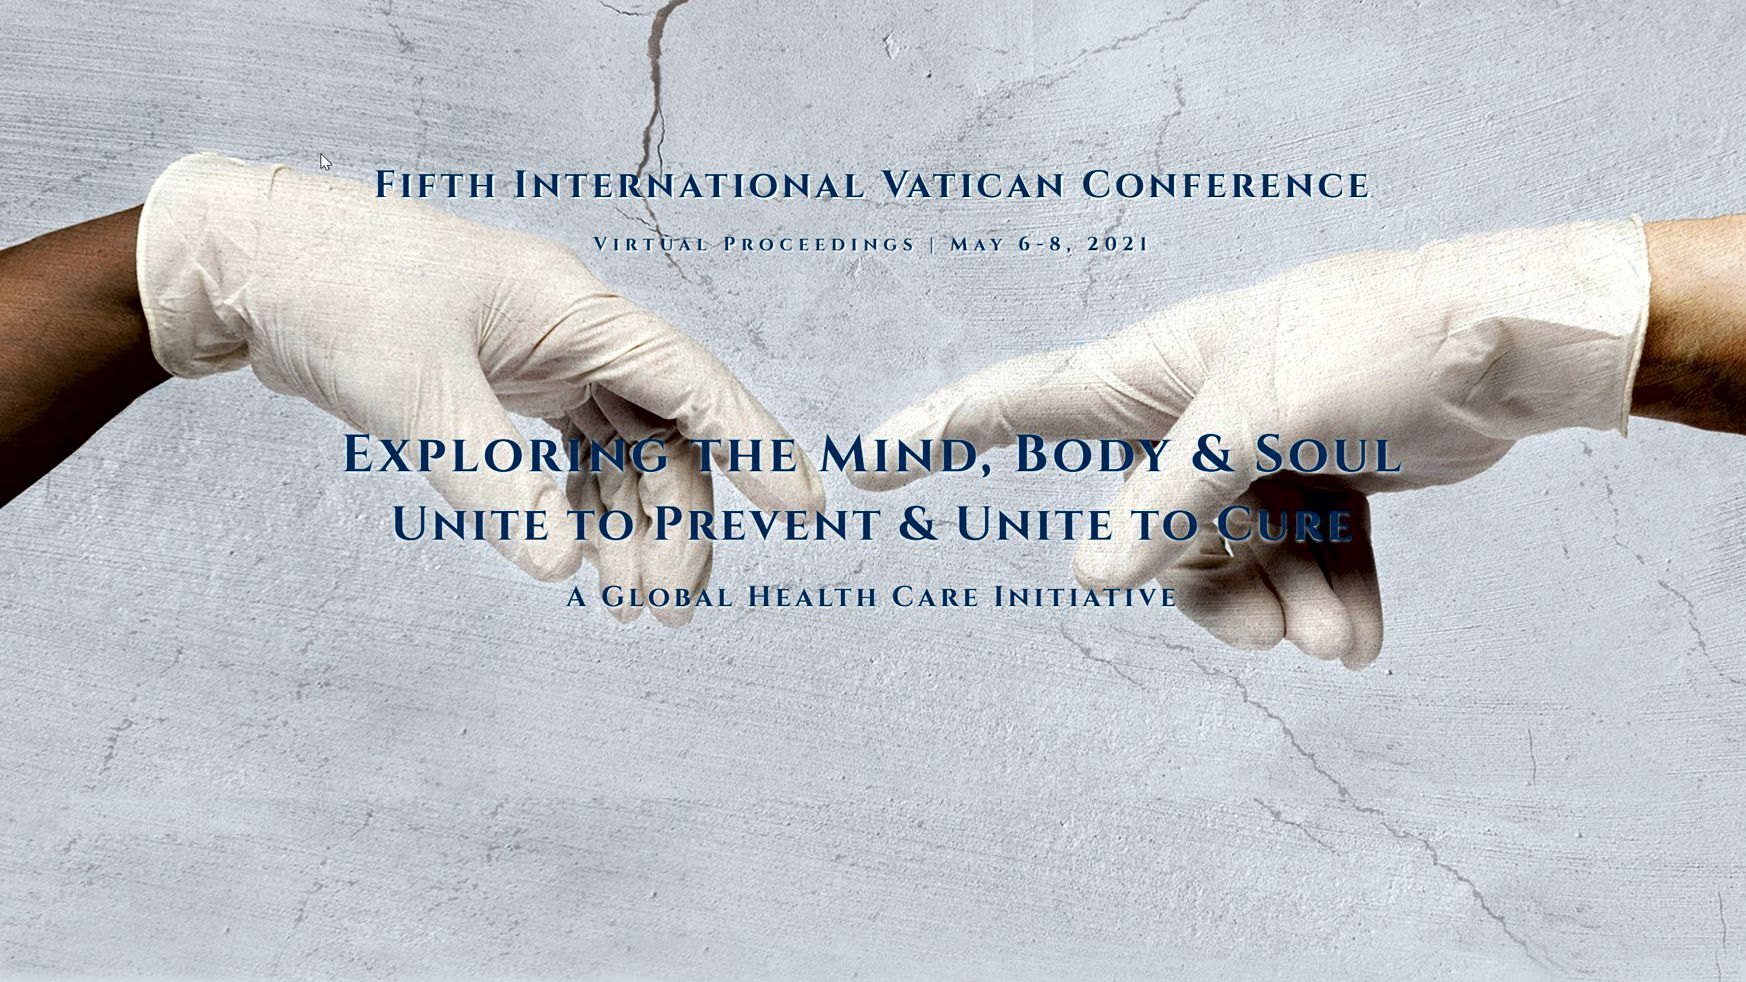 Fifth International Vatican Conference